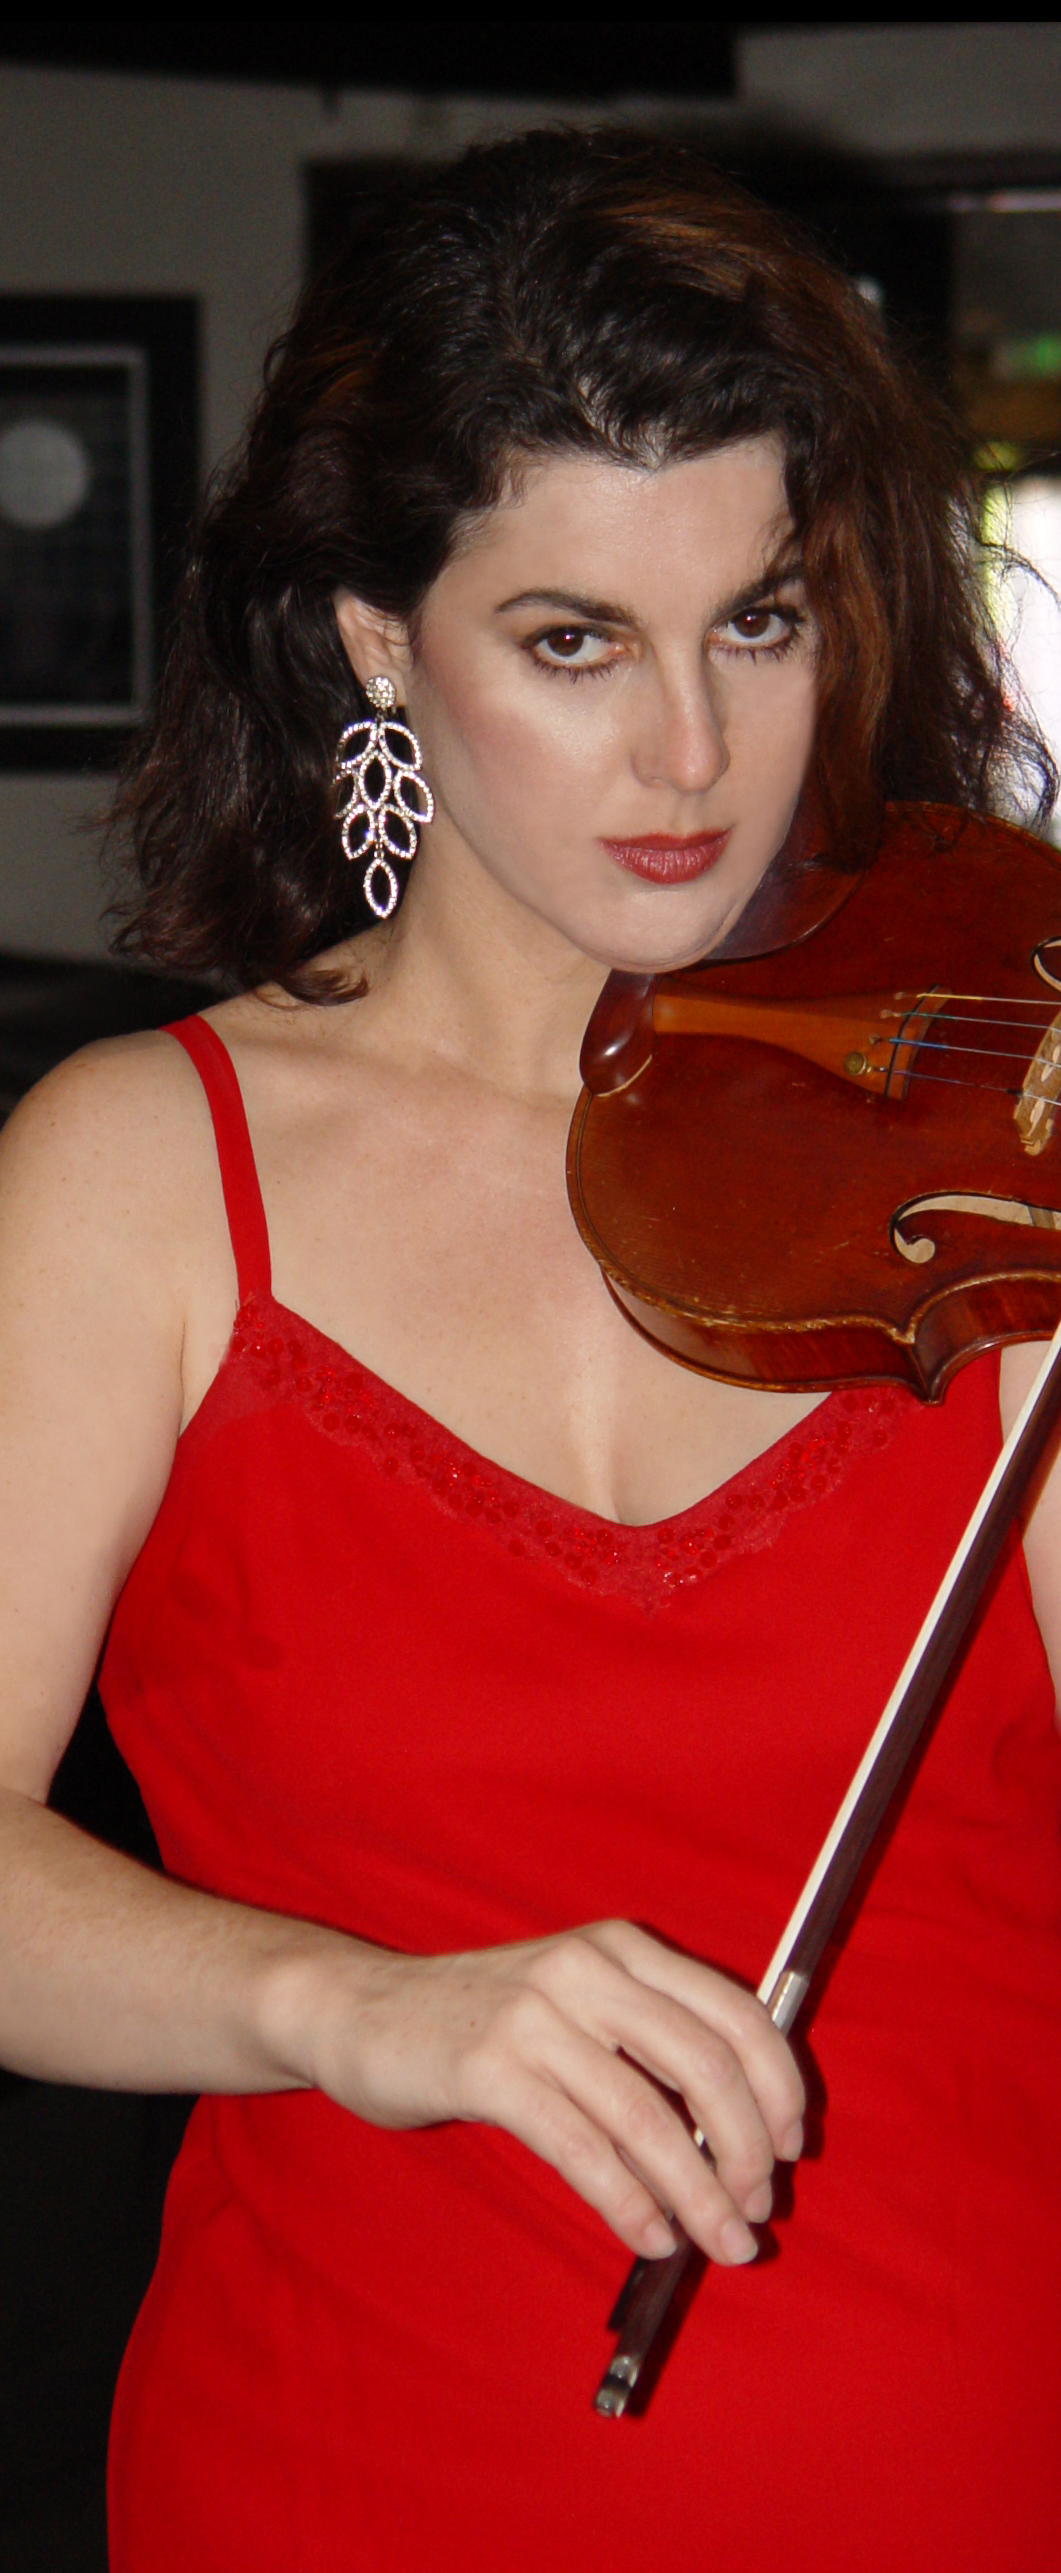 Calabria, Violin, Red Dress